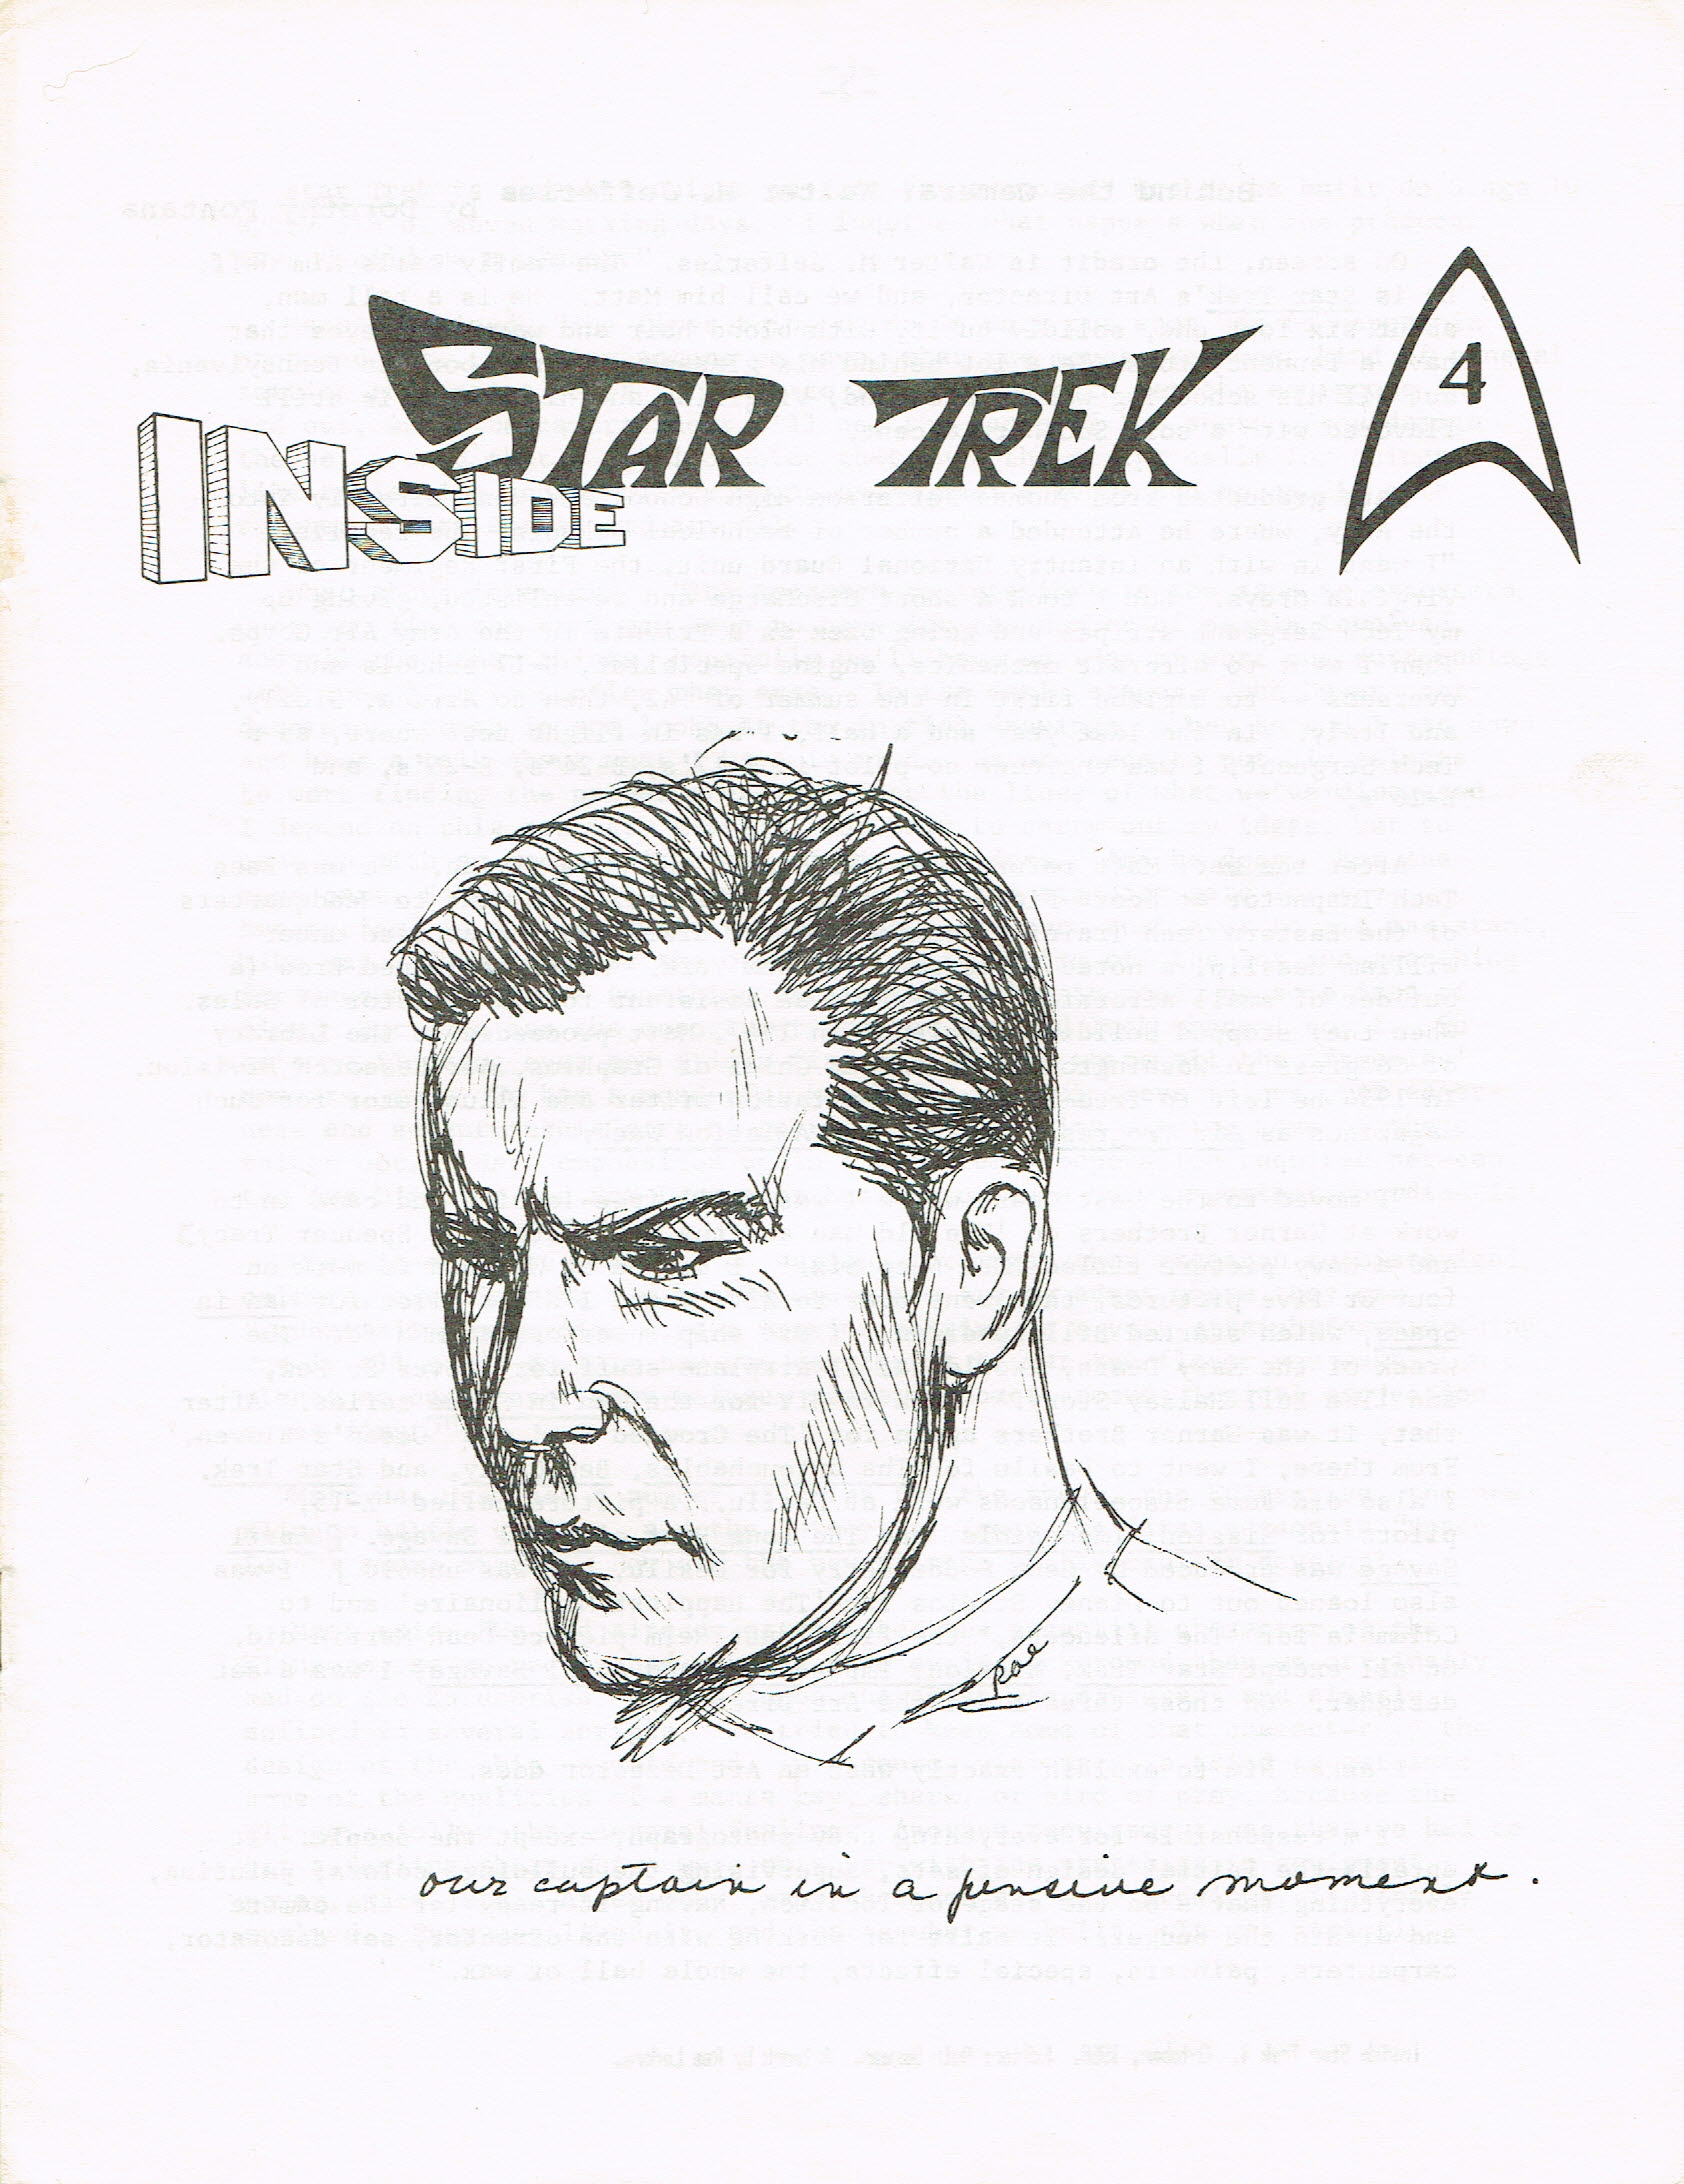 The cover art for Inside Star Trek 4; a sketch of Captain Kirk